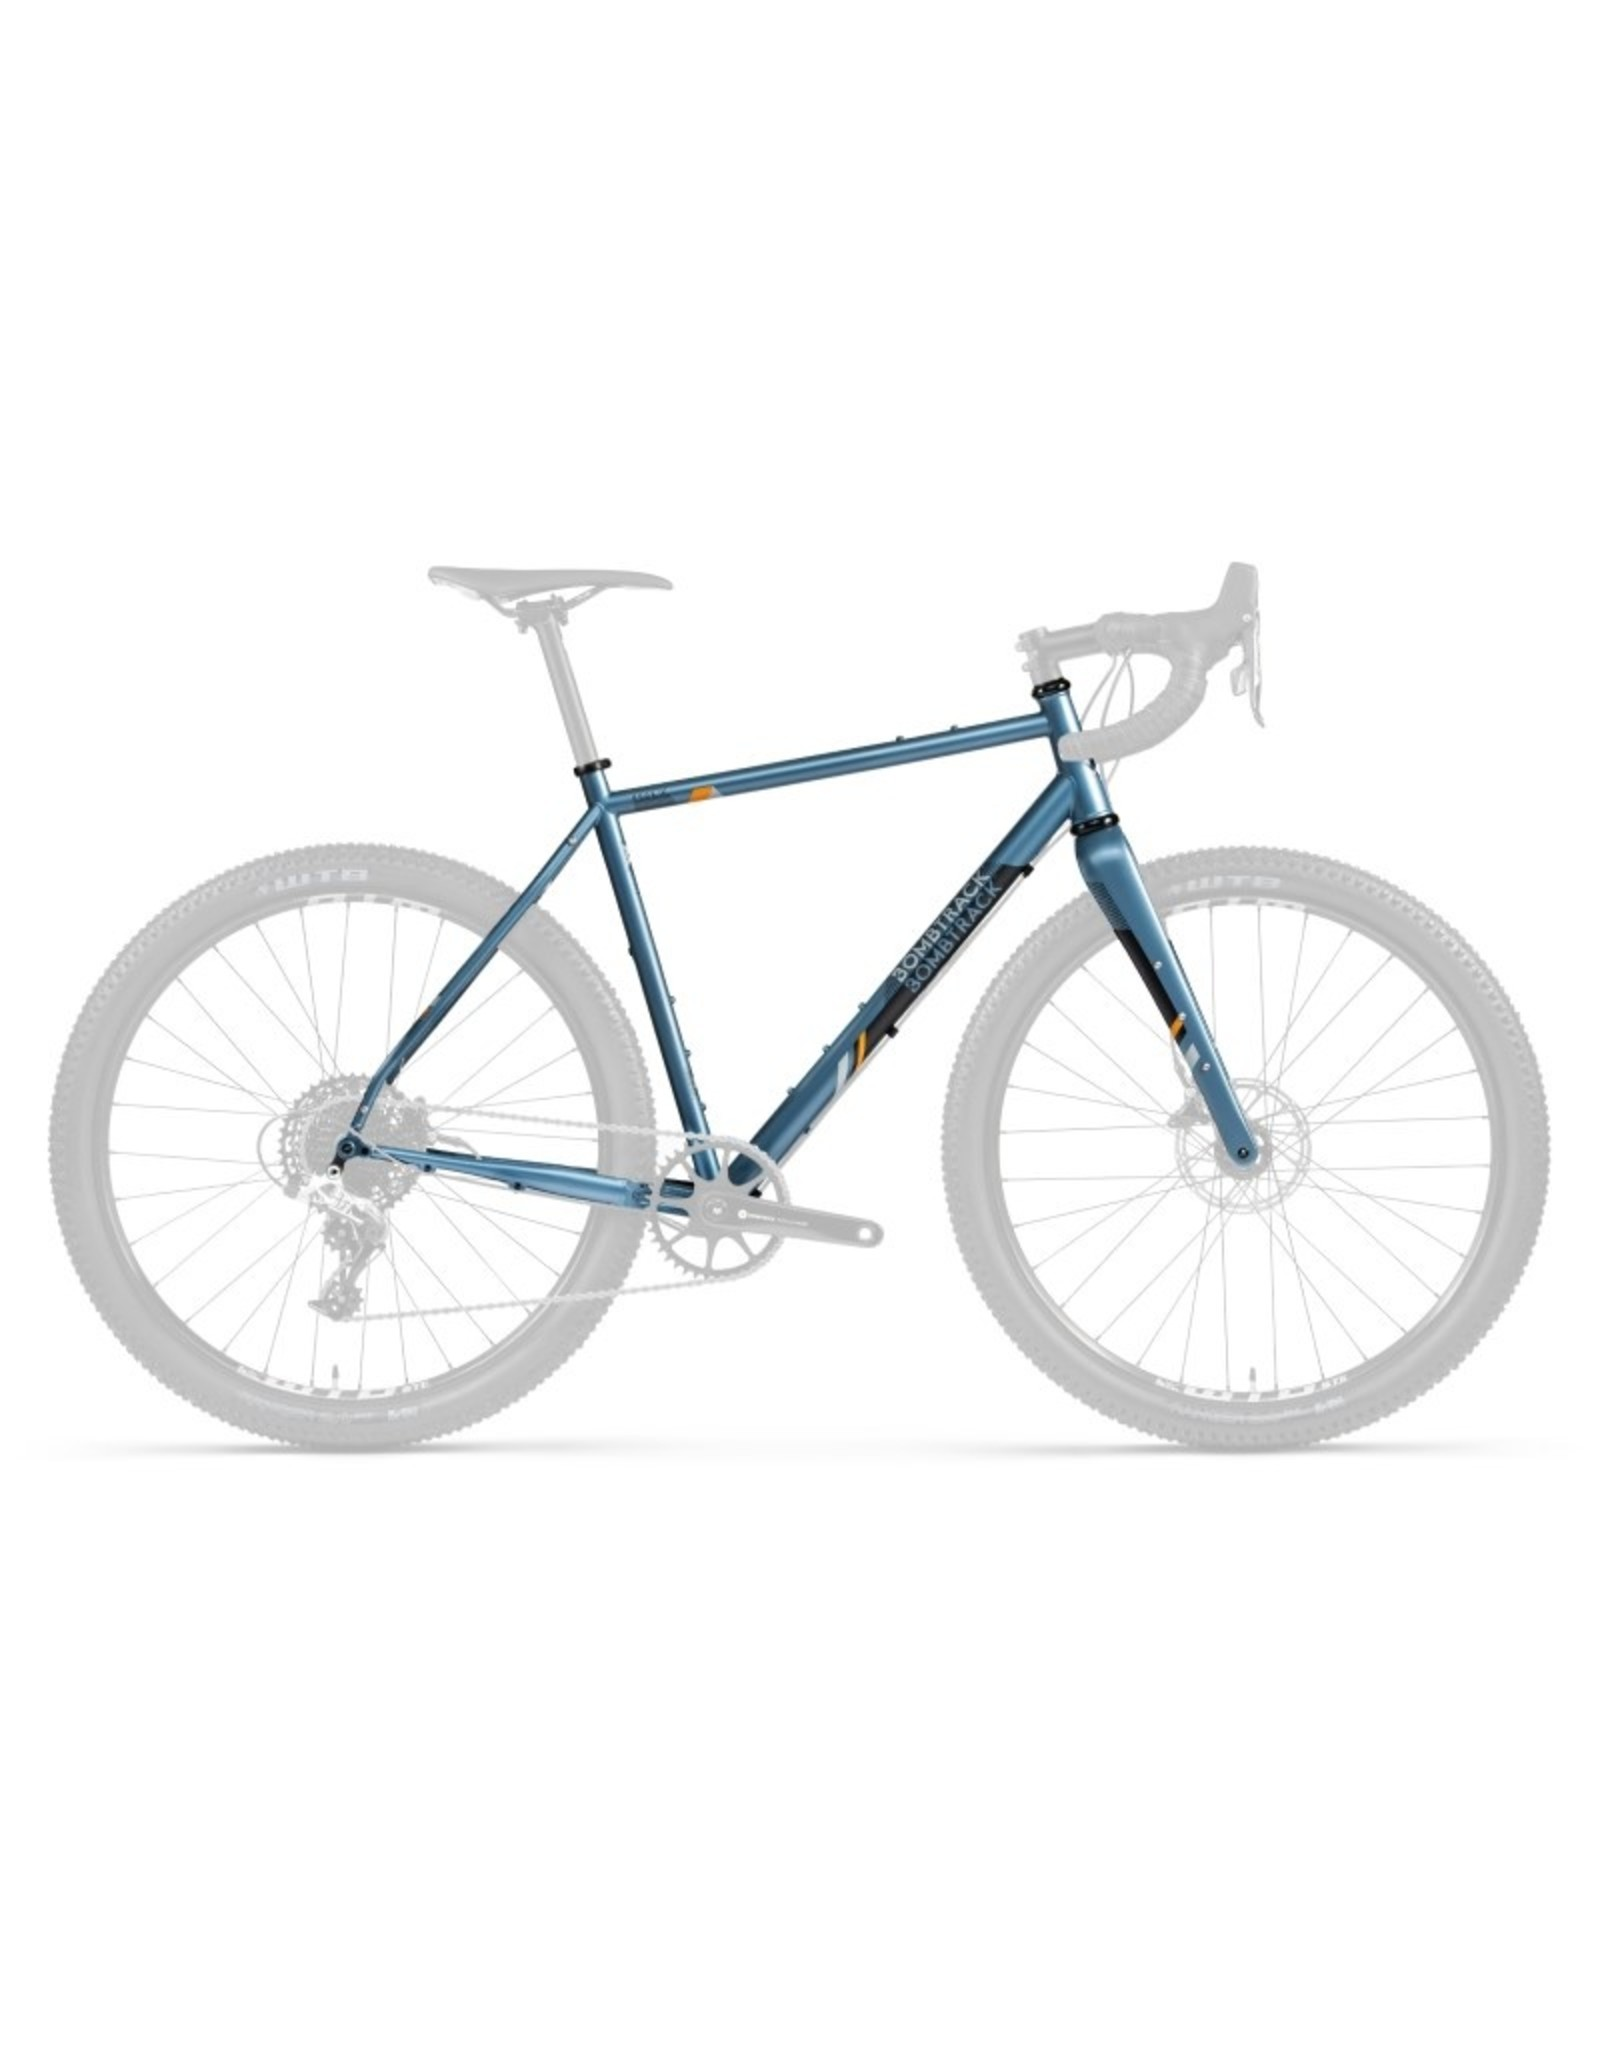 Bombtrack Hook EXT frameset - glossy metallic blue